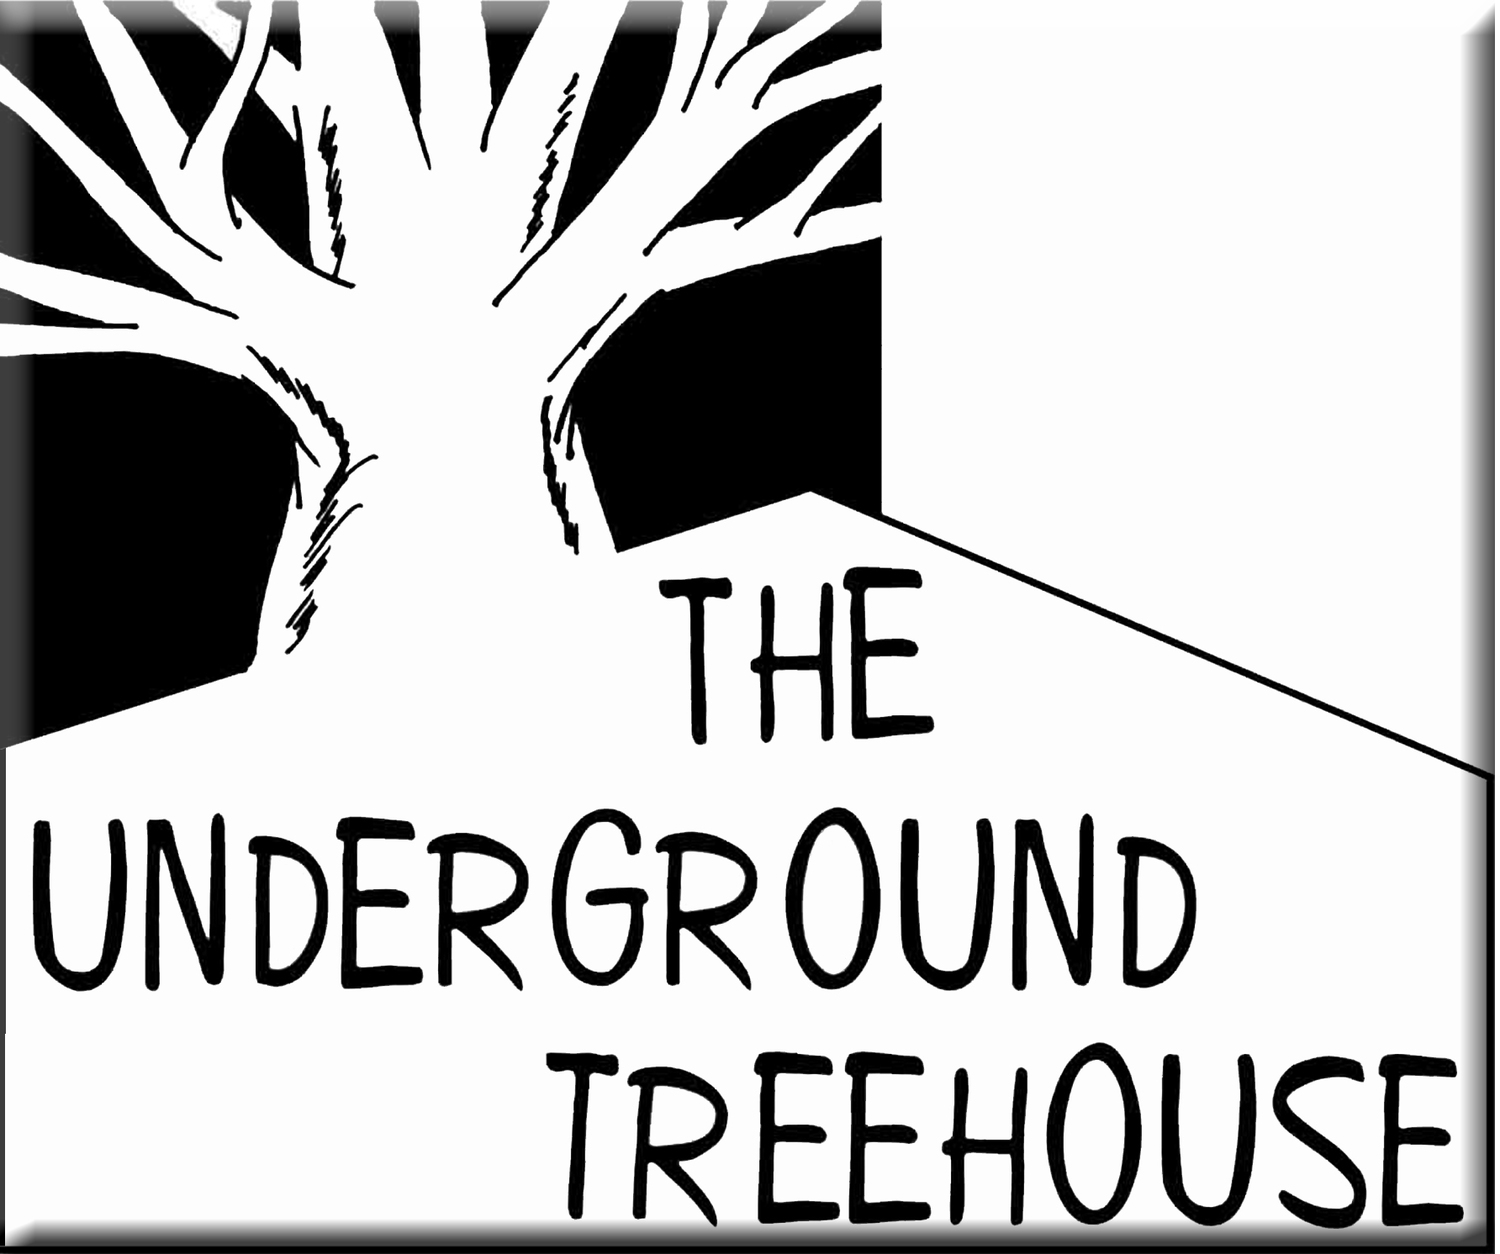 The Underground Treehouse